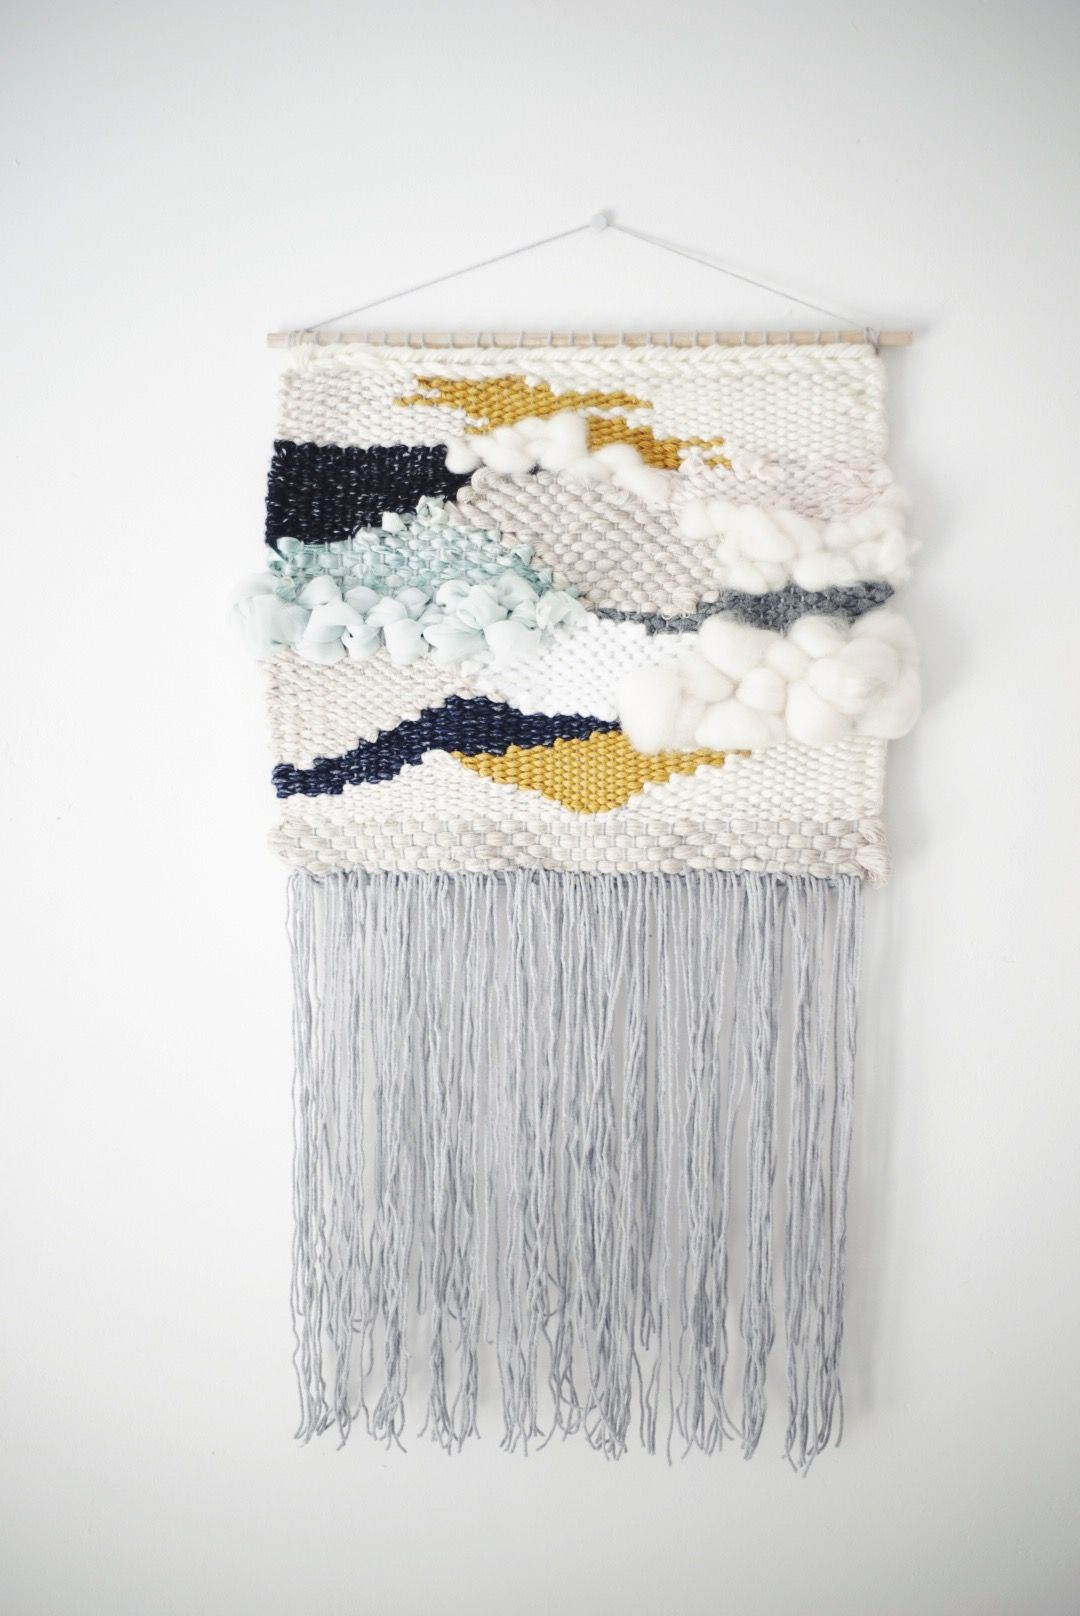 Tissage Diy Weaving Handwoven Tissage By Julie Robert Walls And